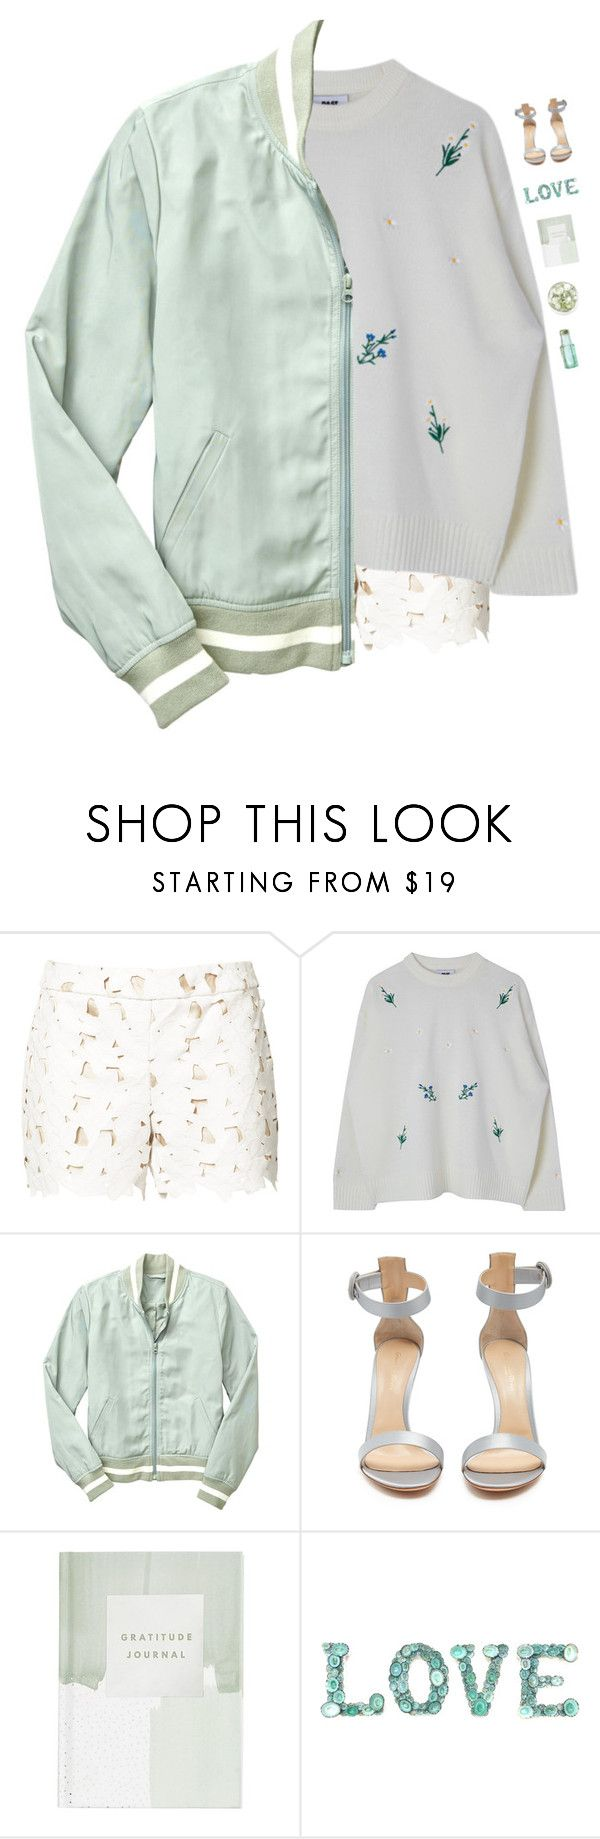 """Mint jacket"" by genesis129 ❤ liked on Polyvore featuring Alice + Olivia, Gap, Gianvito Rossi, Thrive and vintage"